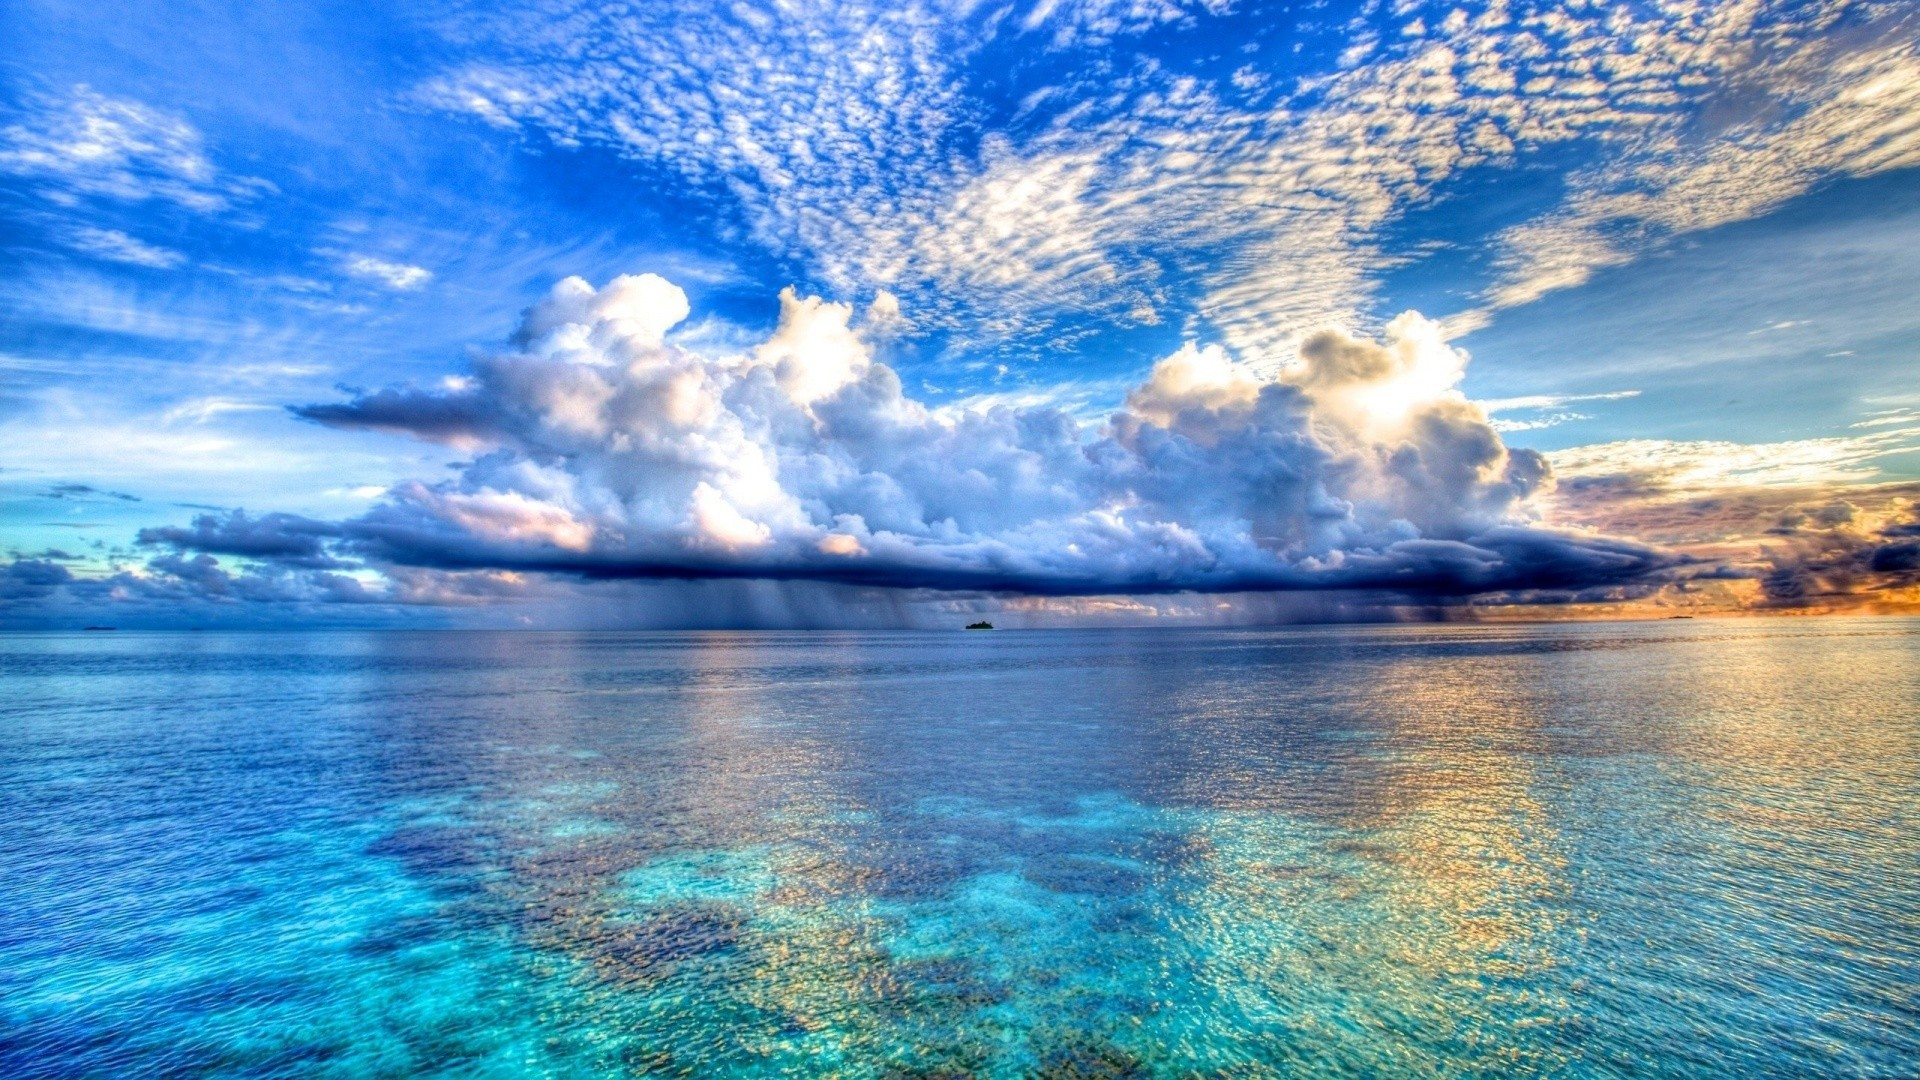 Beautiful Sea Wide HD Desktop Background Wallpaper Photos 1920x1080